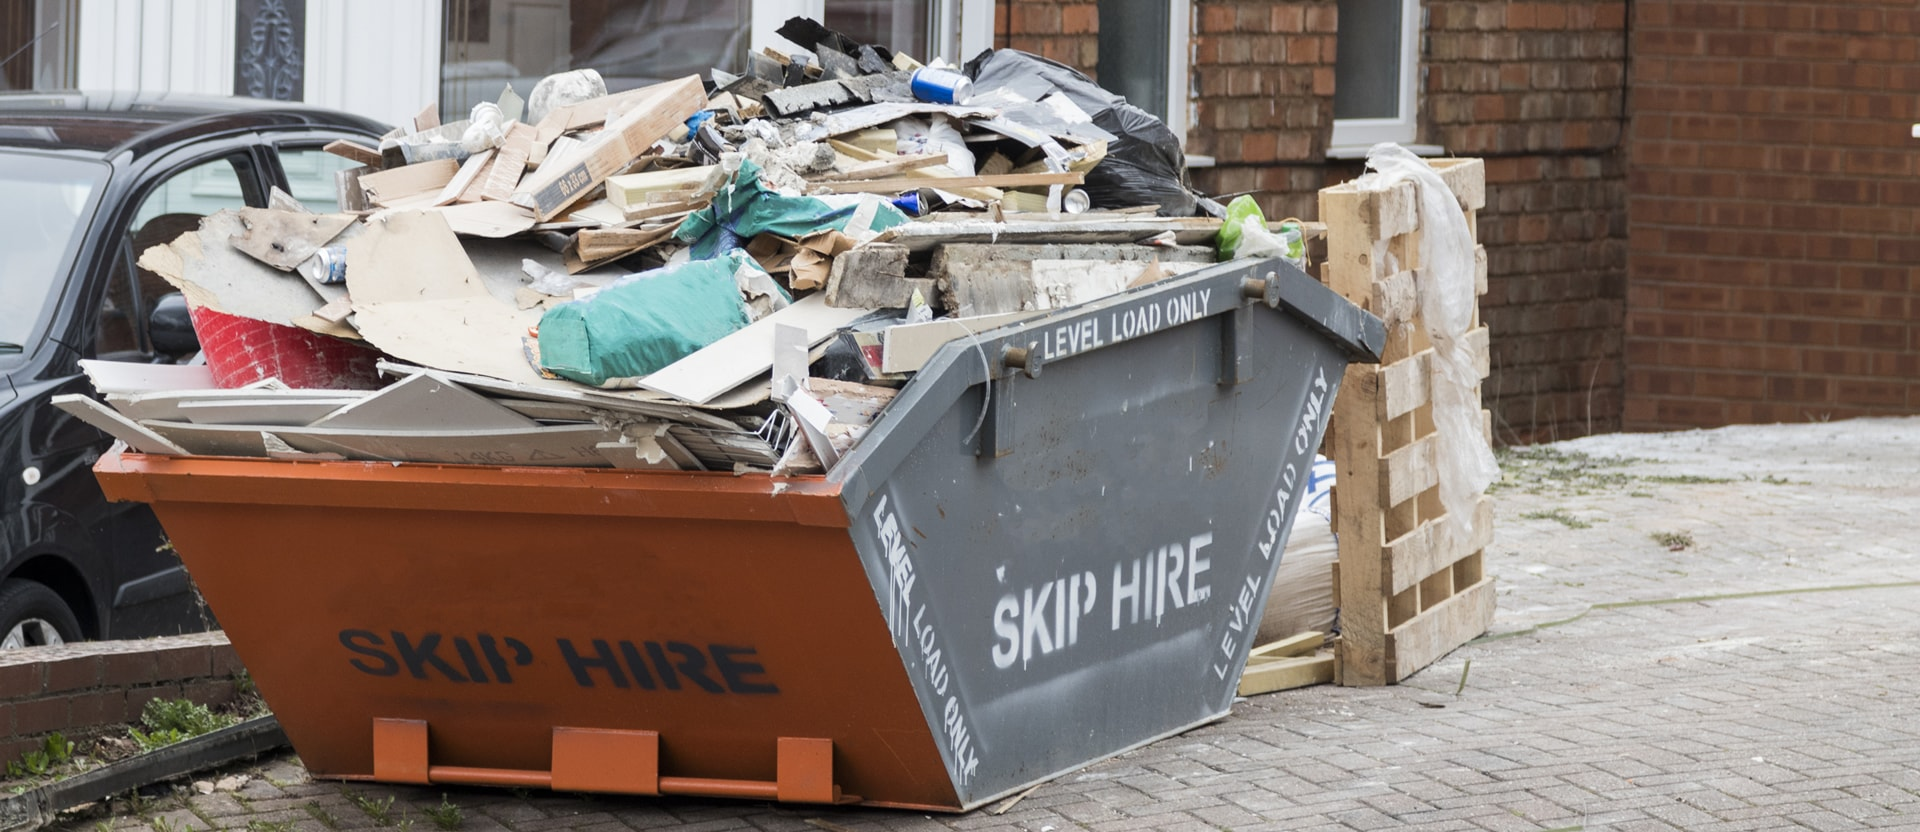 DY's Hauling - Garbage Bin rental, Junk Removal Calgary and Area